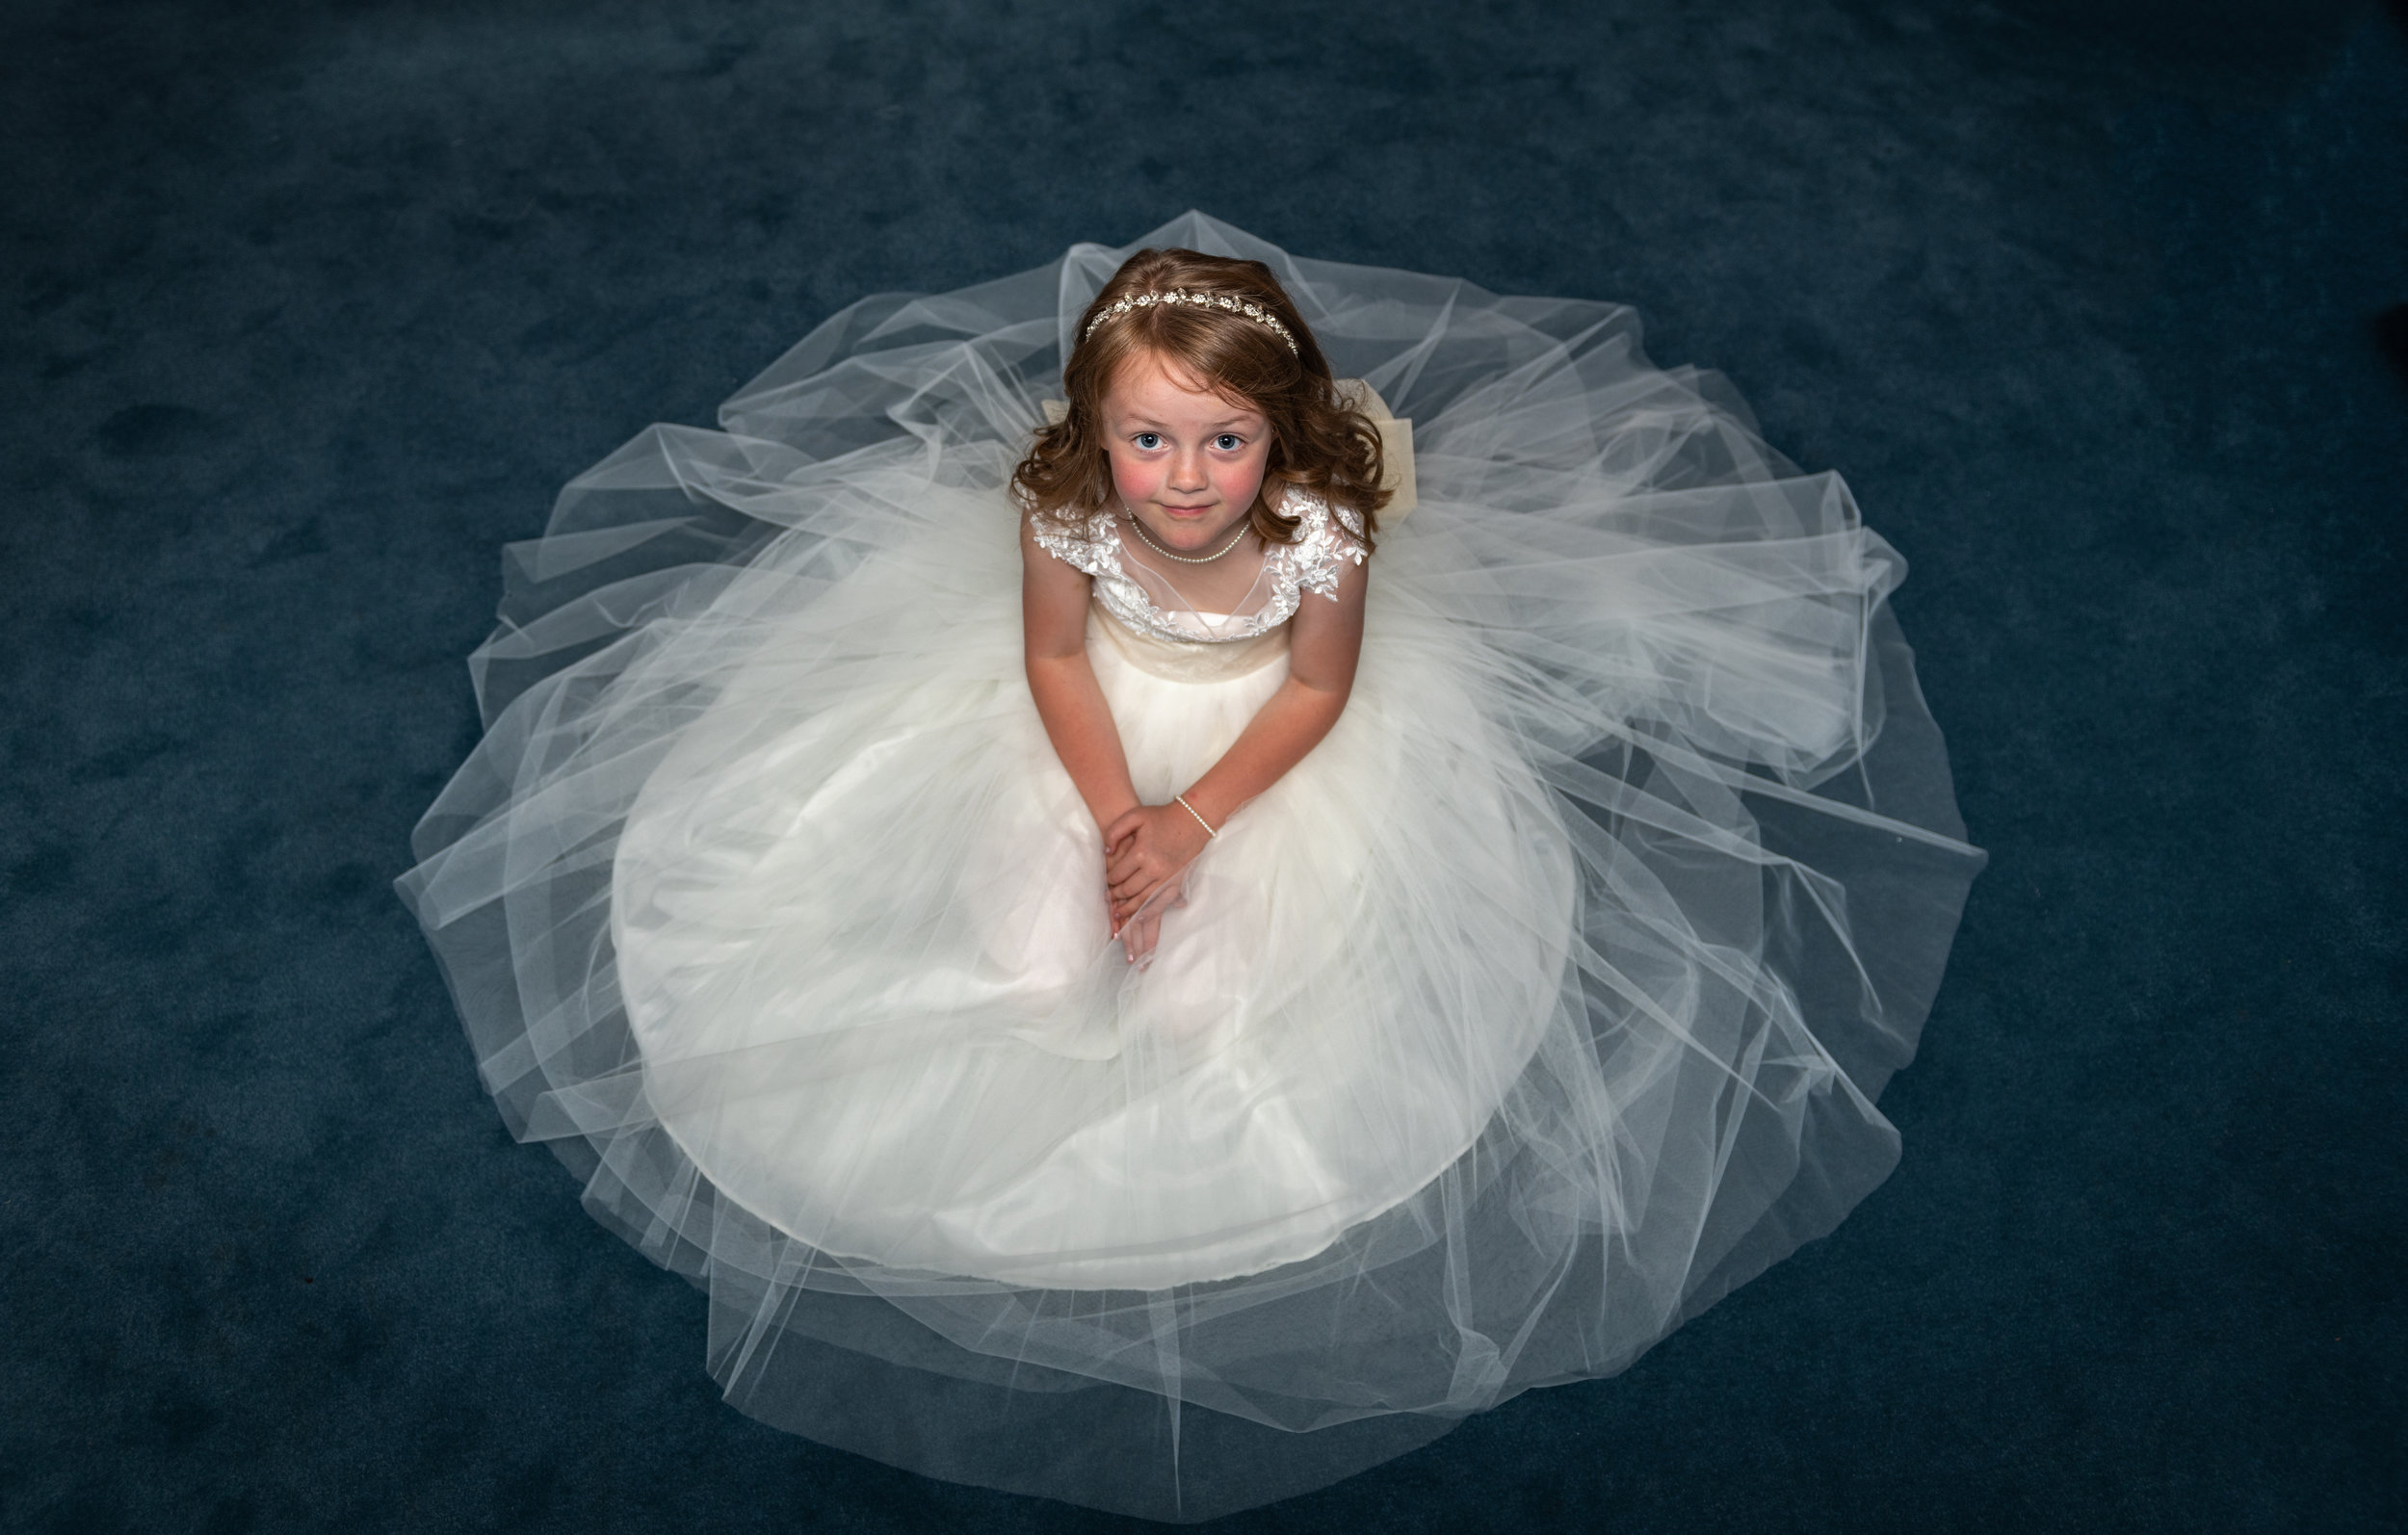 Flowergirl waiting for bride to finish getting ready